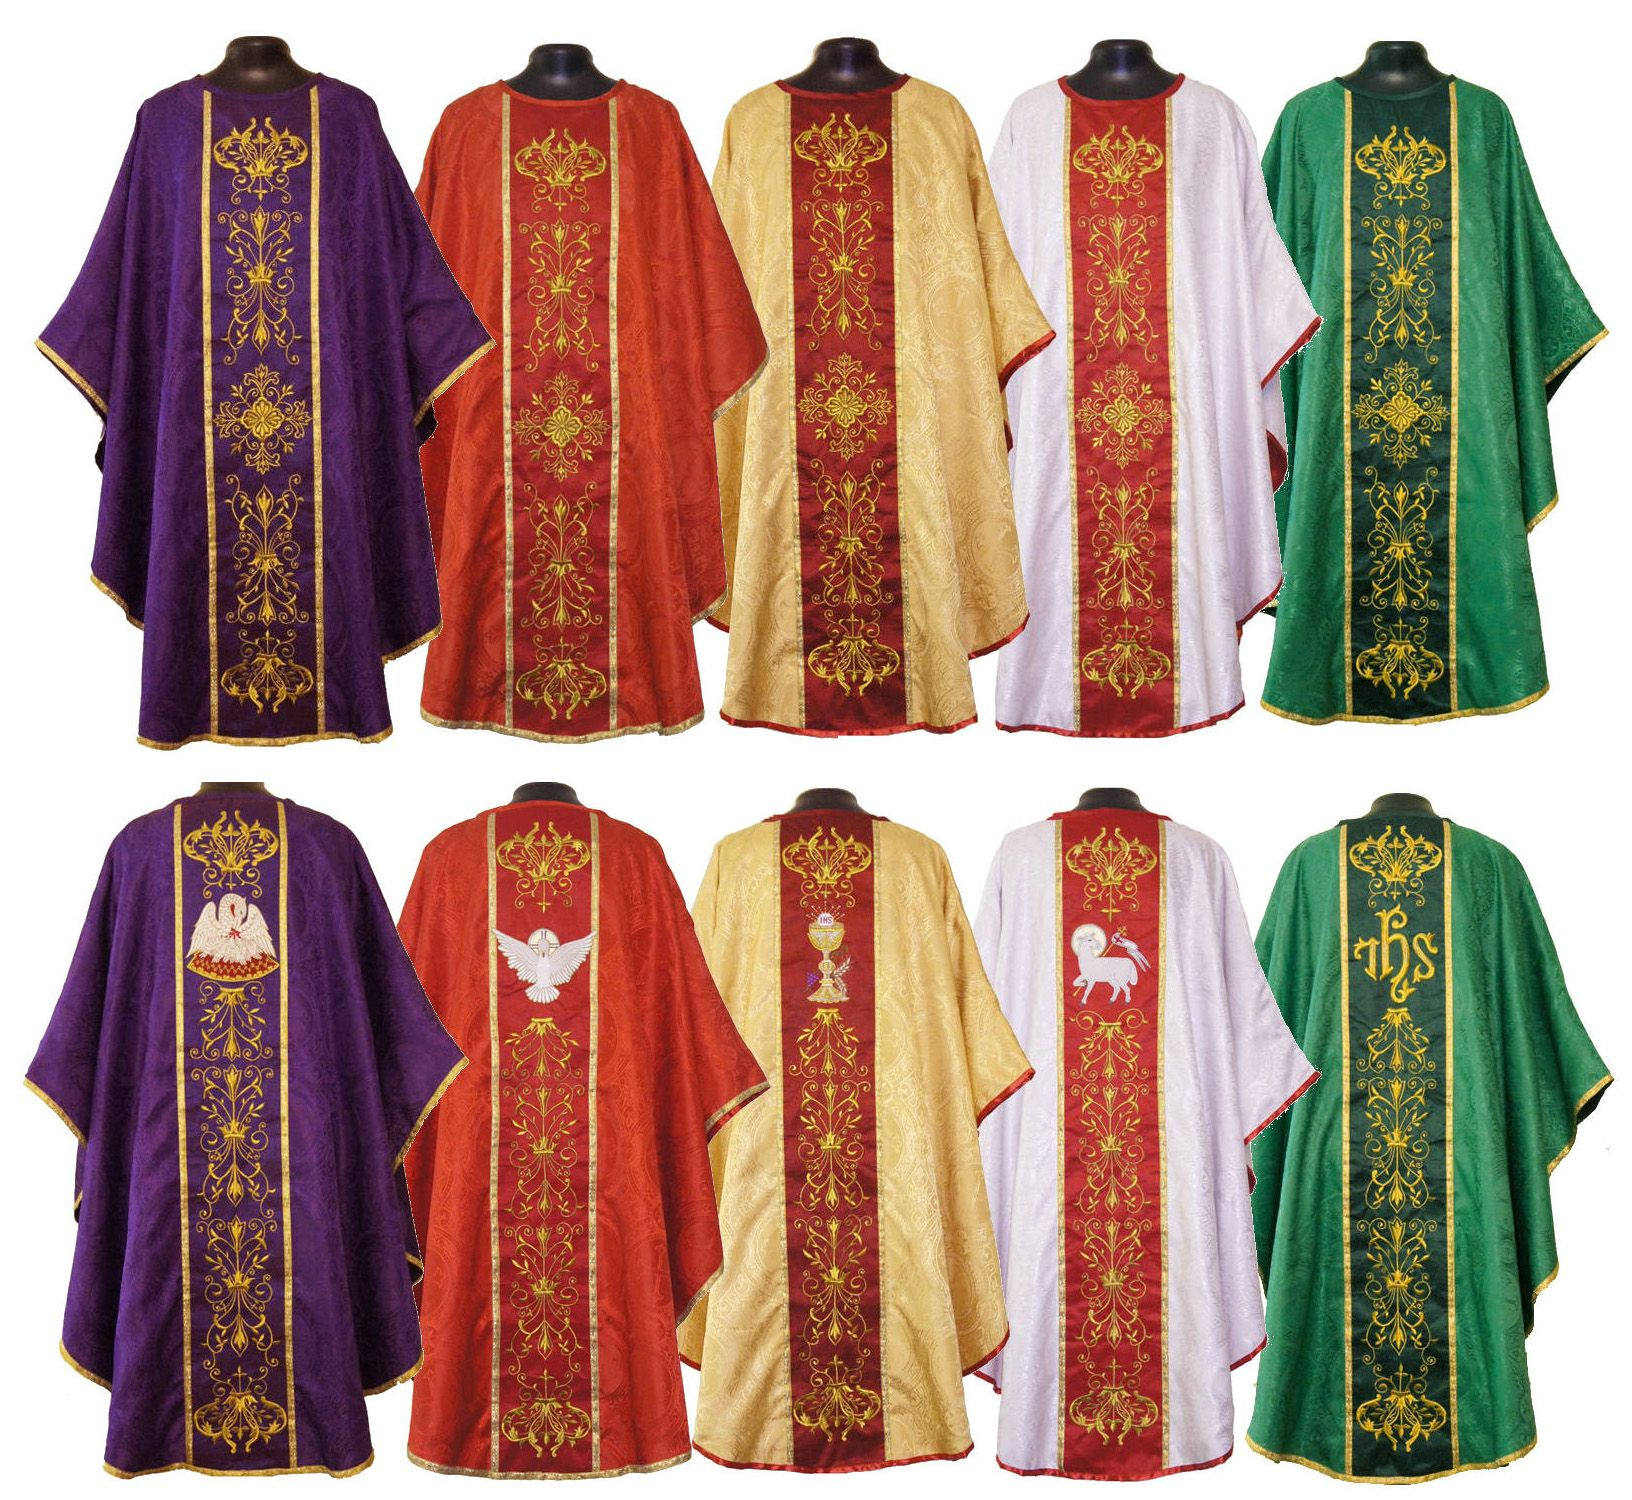 catholic vestments colors - Google Search | Nunsense 2 | Pinterest ...